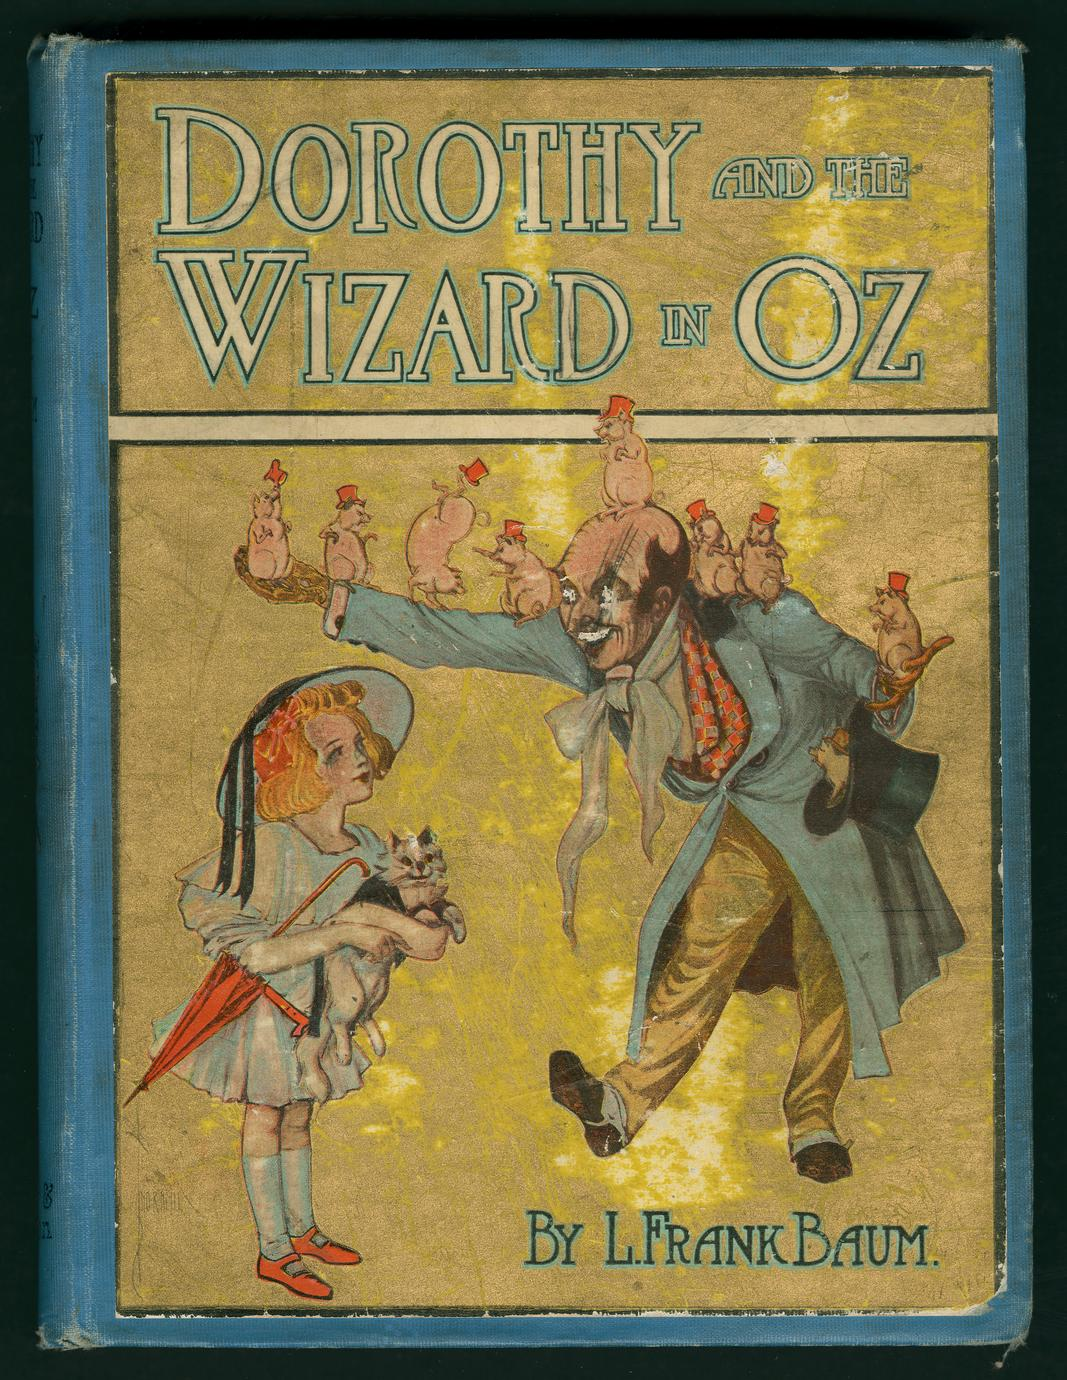 Dorothy and the Wizard in Oz (1 of 3)